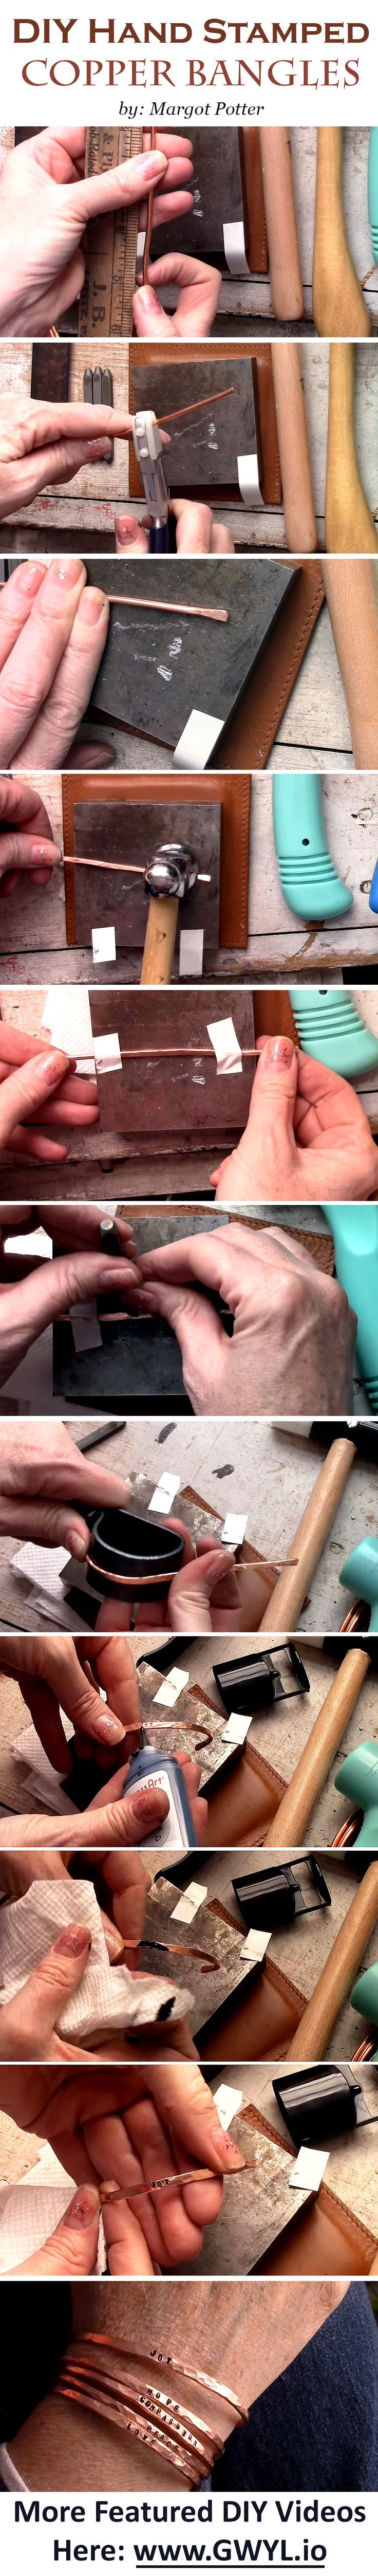 What if we tell you that you can create a stack of adorable stamped wire bangles you see in the boutiques? Yes, it's possible! See the video and full written instructions here ==> http://gwyl.io/diy-hand-stamped-copper-bangles/